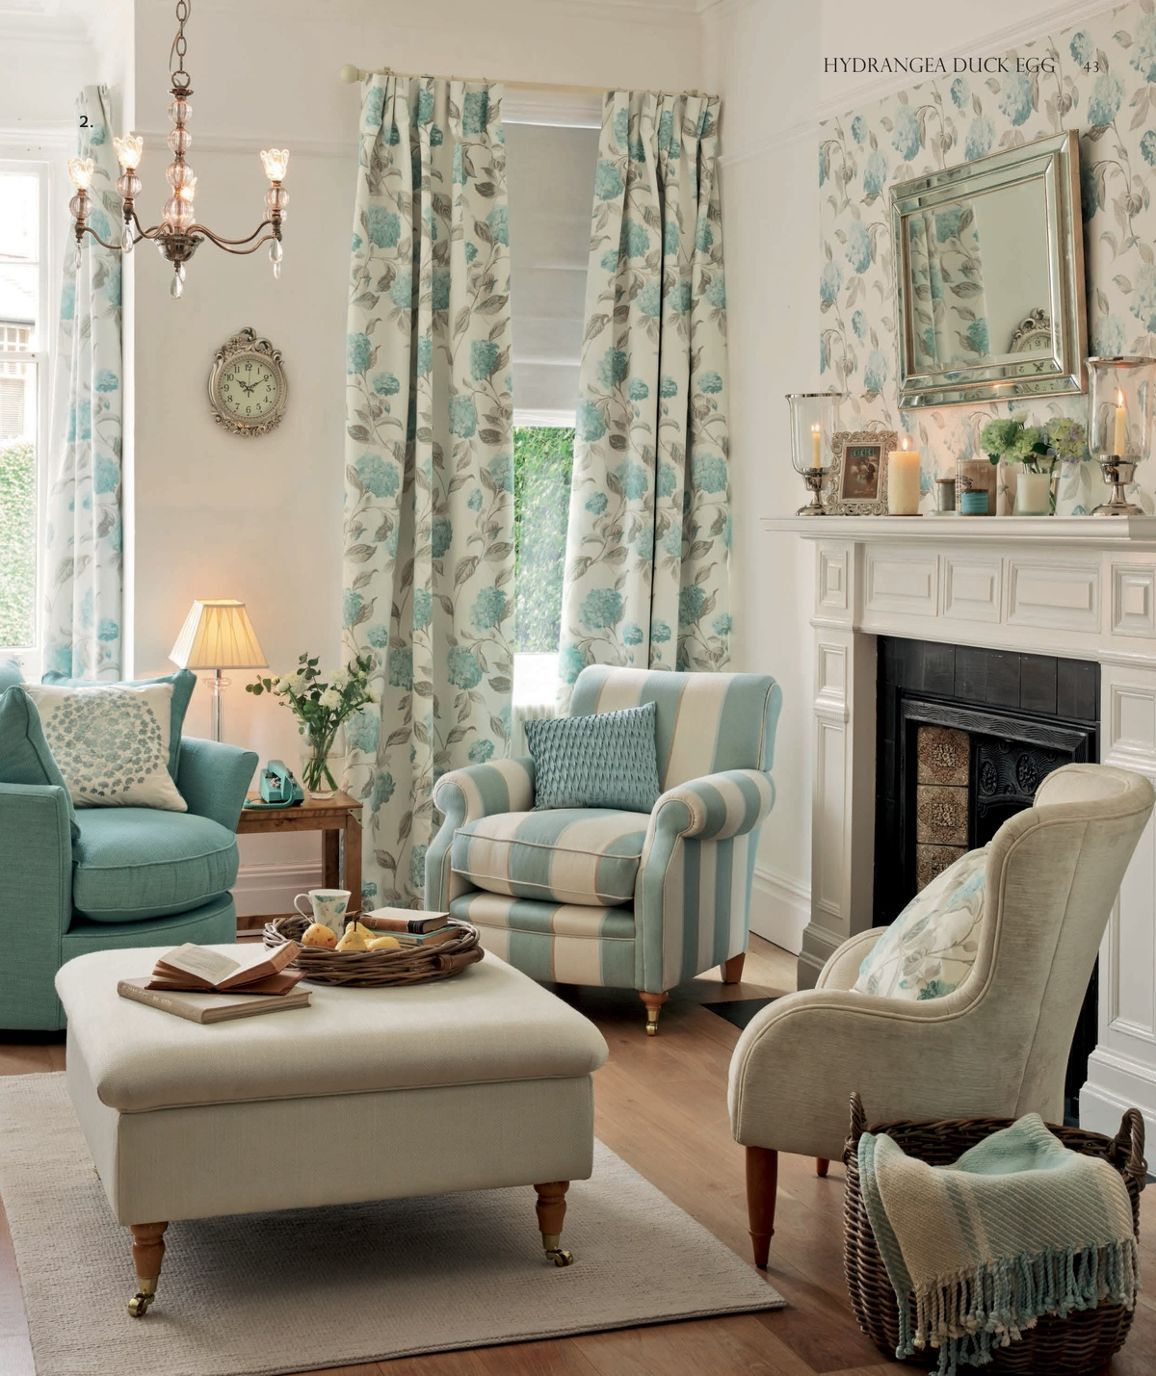 Laura Ashley Muebles Laura Ashley Love This Living Room The Colors Are So Peaceful And